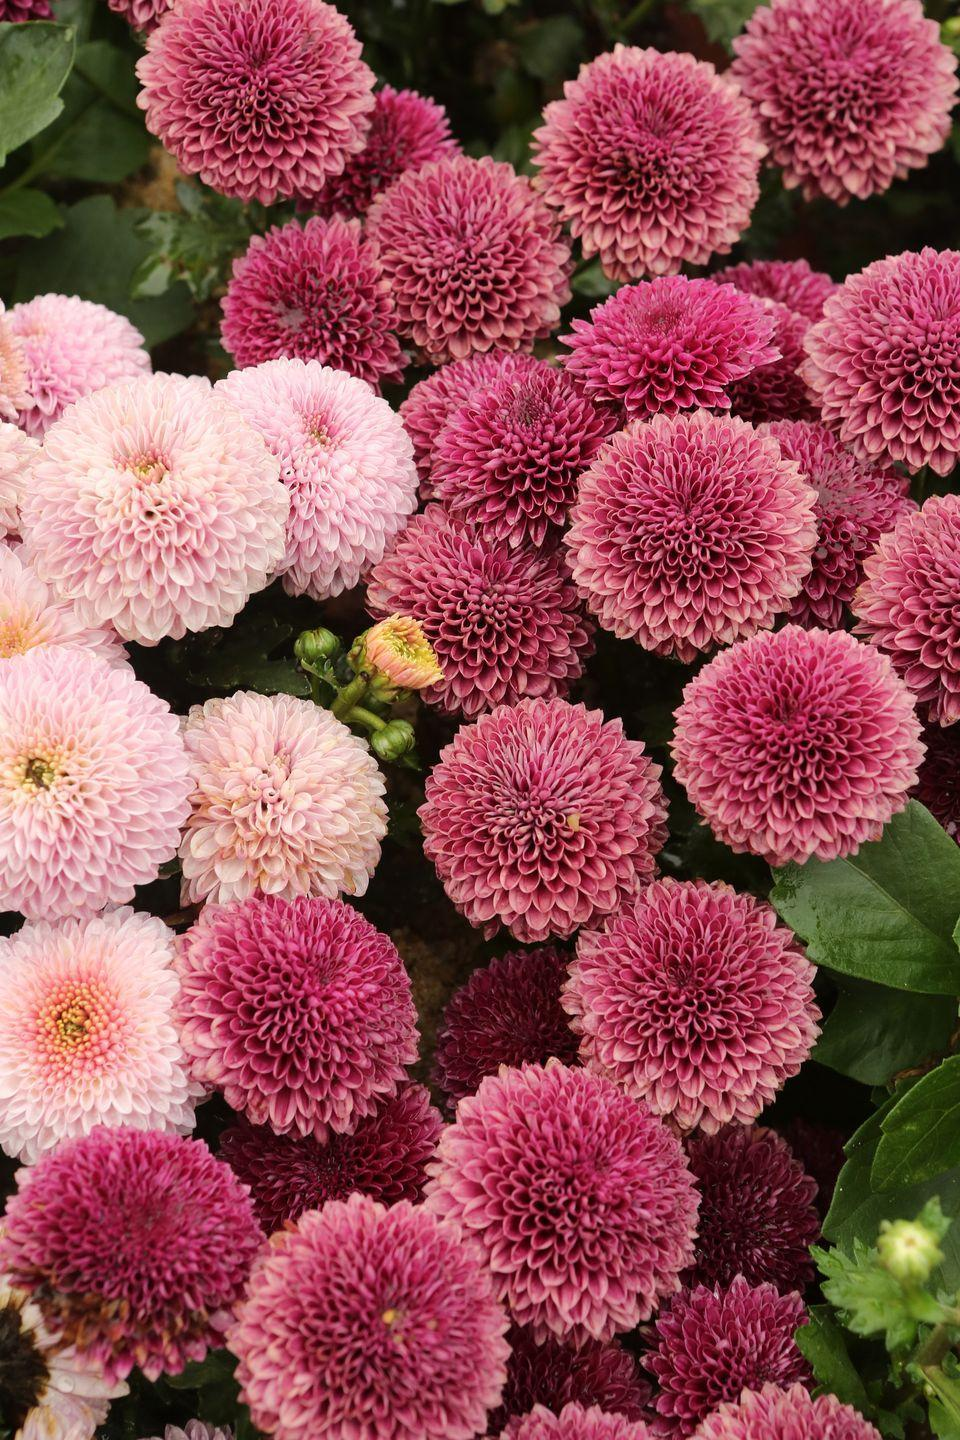 """<p>Mums come in every color you can imagine! Purchase mums in the spring to allow time for their roots to grow so they can come back next year. If you plant them in the fall, when you typically see them at nurseries and retailers, you'll enjoy them for the season but the plant won't have time to get established before winter.</p><p>Varieties to try: Matchsticks, Daisy Quill Yellow</p><p><a class=""""link rapid-noclick-resp"""" href=""""https://www.bluestoneperennials.com/MPICR.html"""" rel=""""nofollow noopener"""" target=""""_blank"""" data-ylk=""""slk:SHOP NOW"""">SHOP NOW</a></p>"""